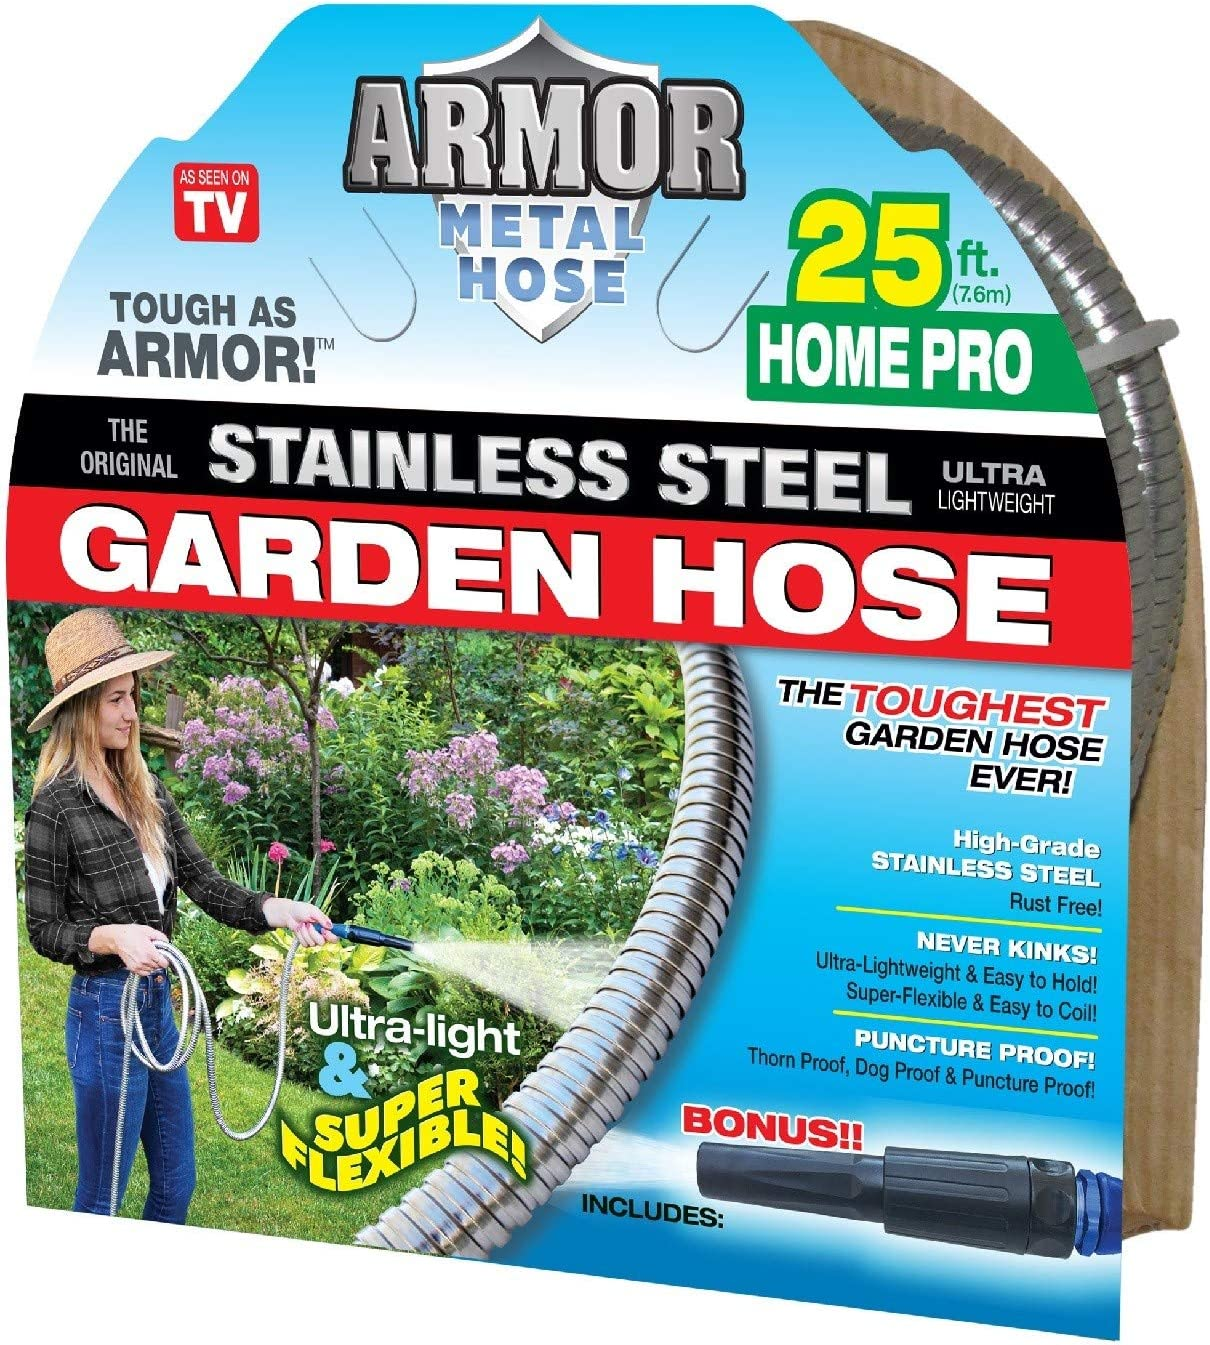 Stainless Steel Metal Hose (25' Armor Home Pro)